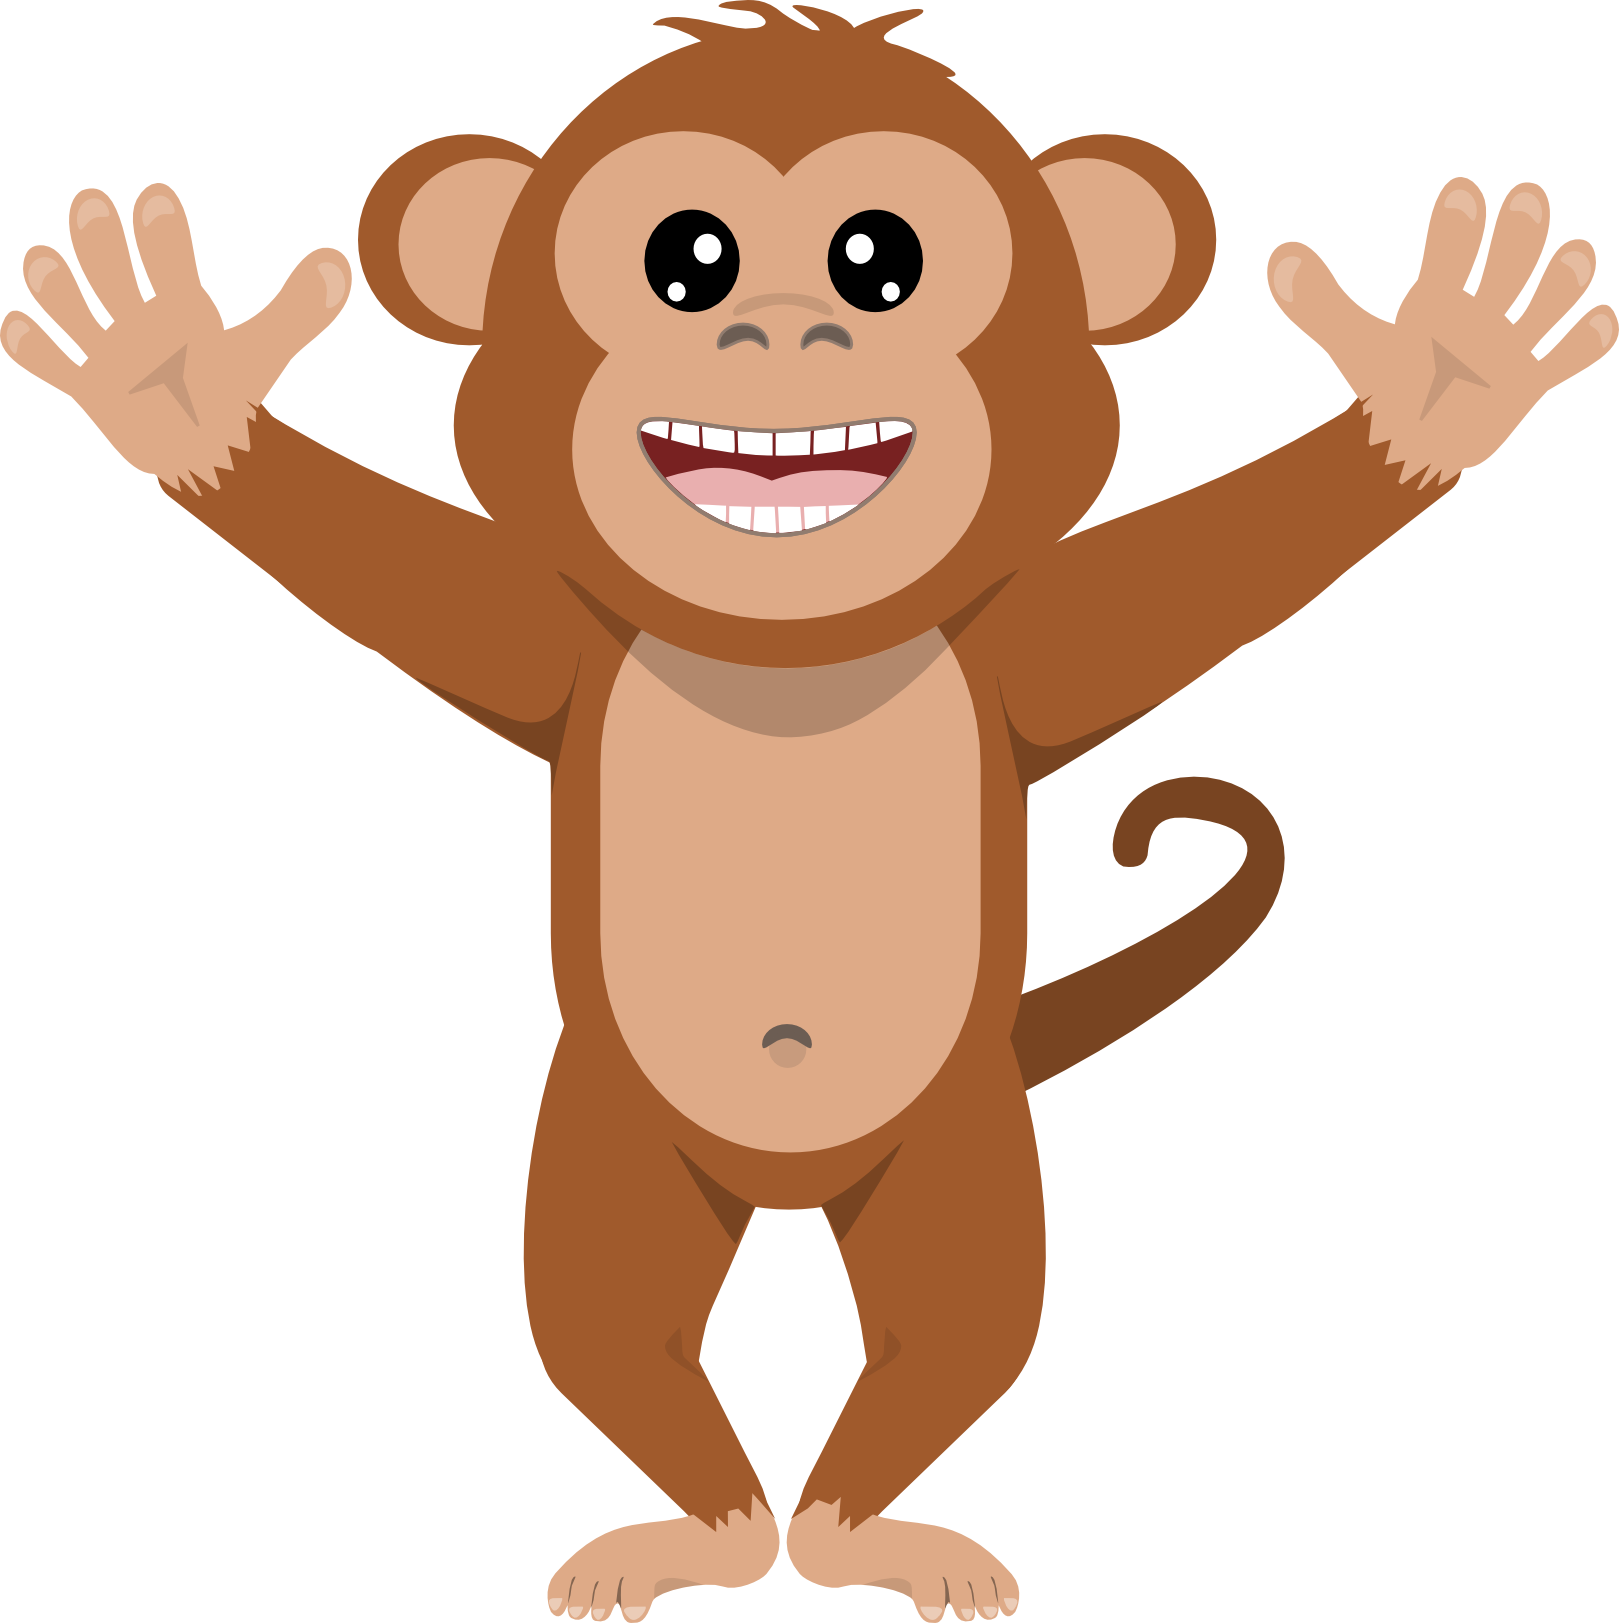 Animals clipart transparent background. Mixed clip art monkey